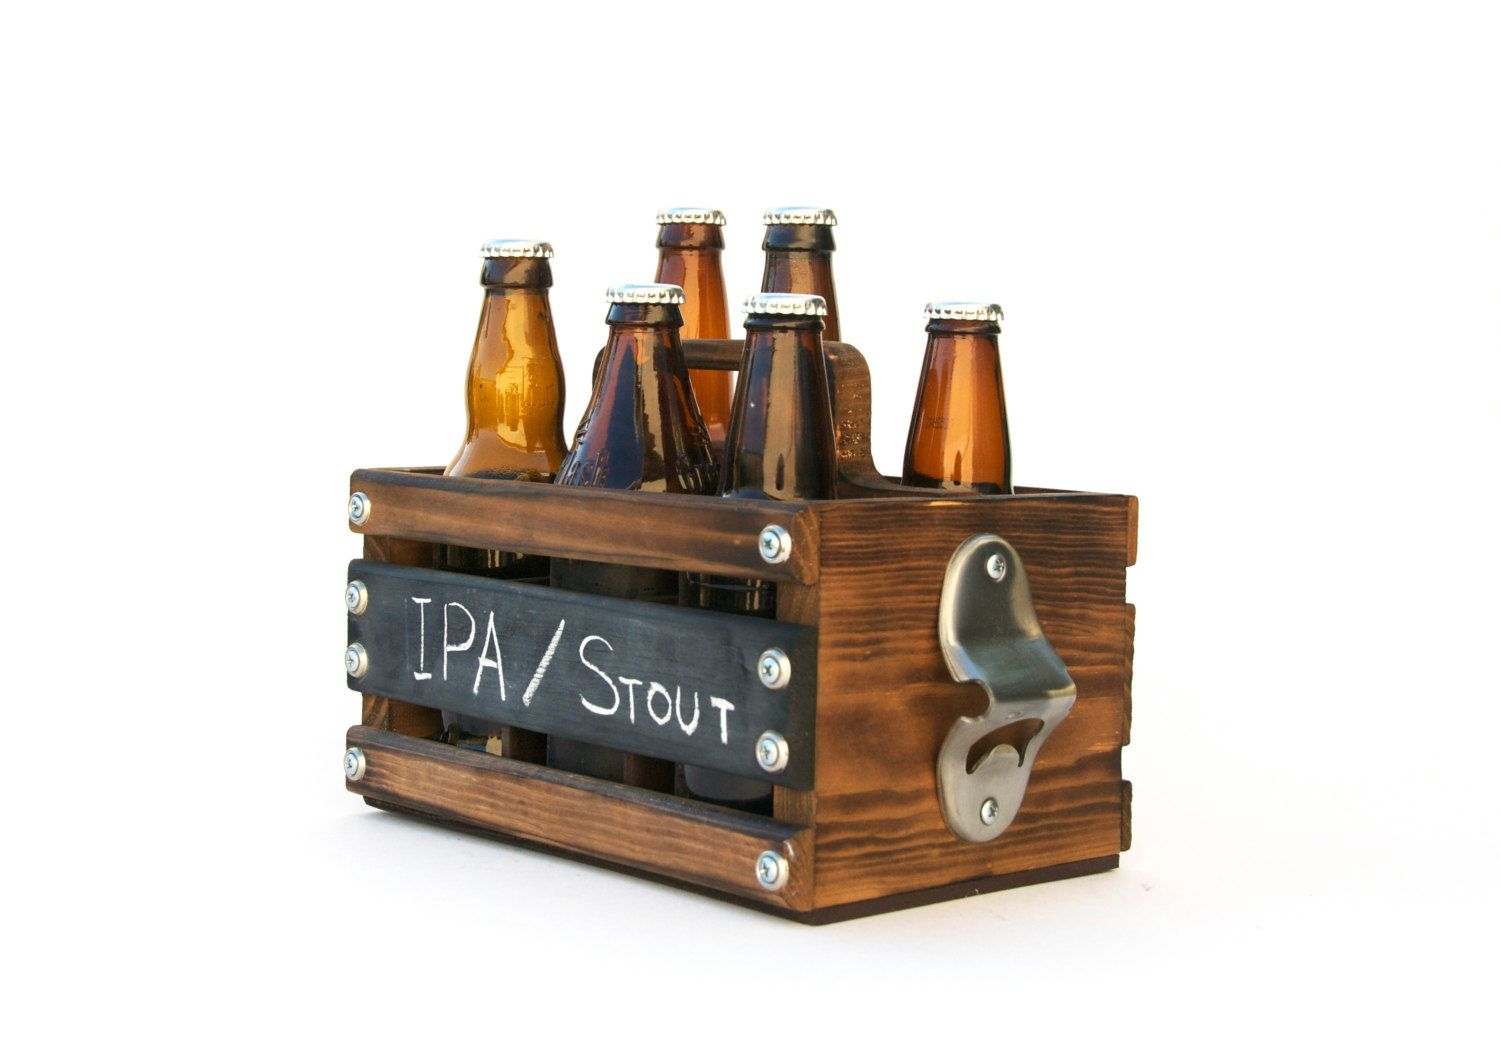 Impress Your Friends Next Time You Bring A 6 Pack To A Party Stay Classy With This Custom Built Wooden 6 Pack Holder Complete With Bottle Ope Rustic Wood Beer Caddy Beer